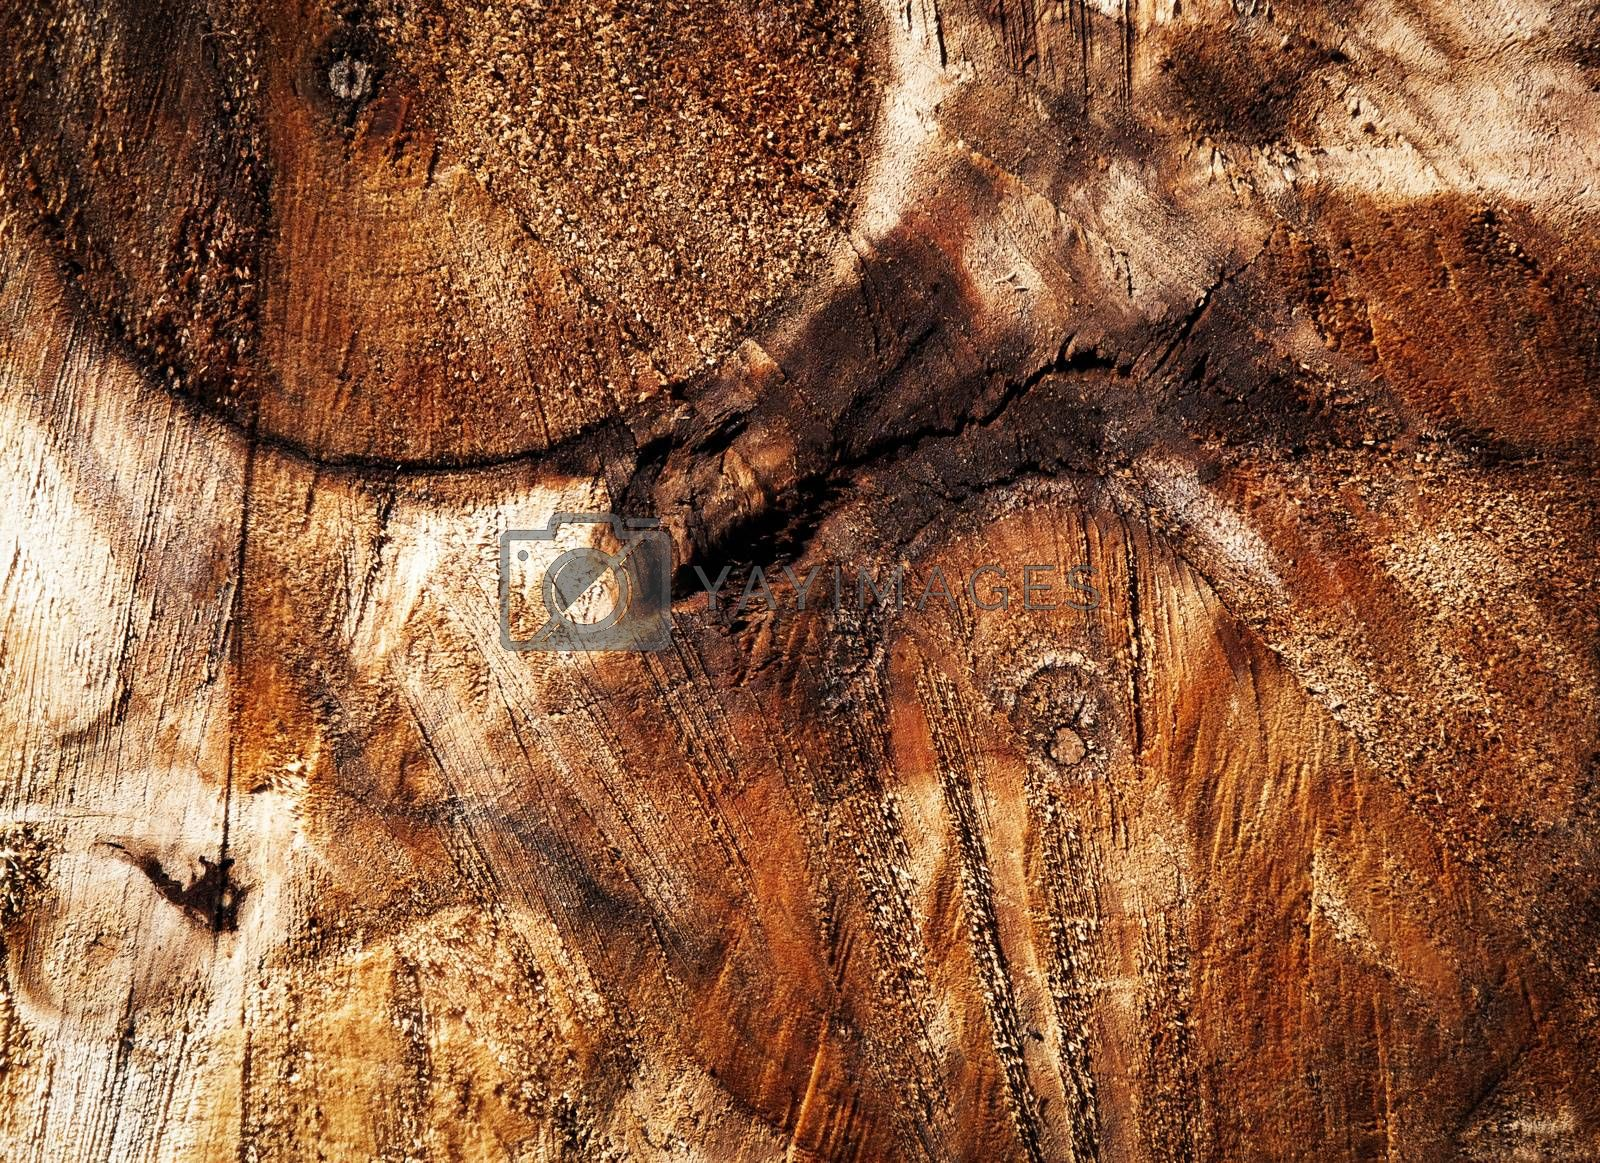 background or texture abstract detail on sawn tree trunks